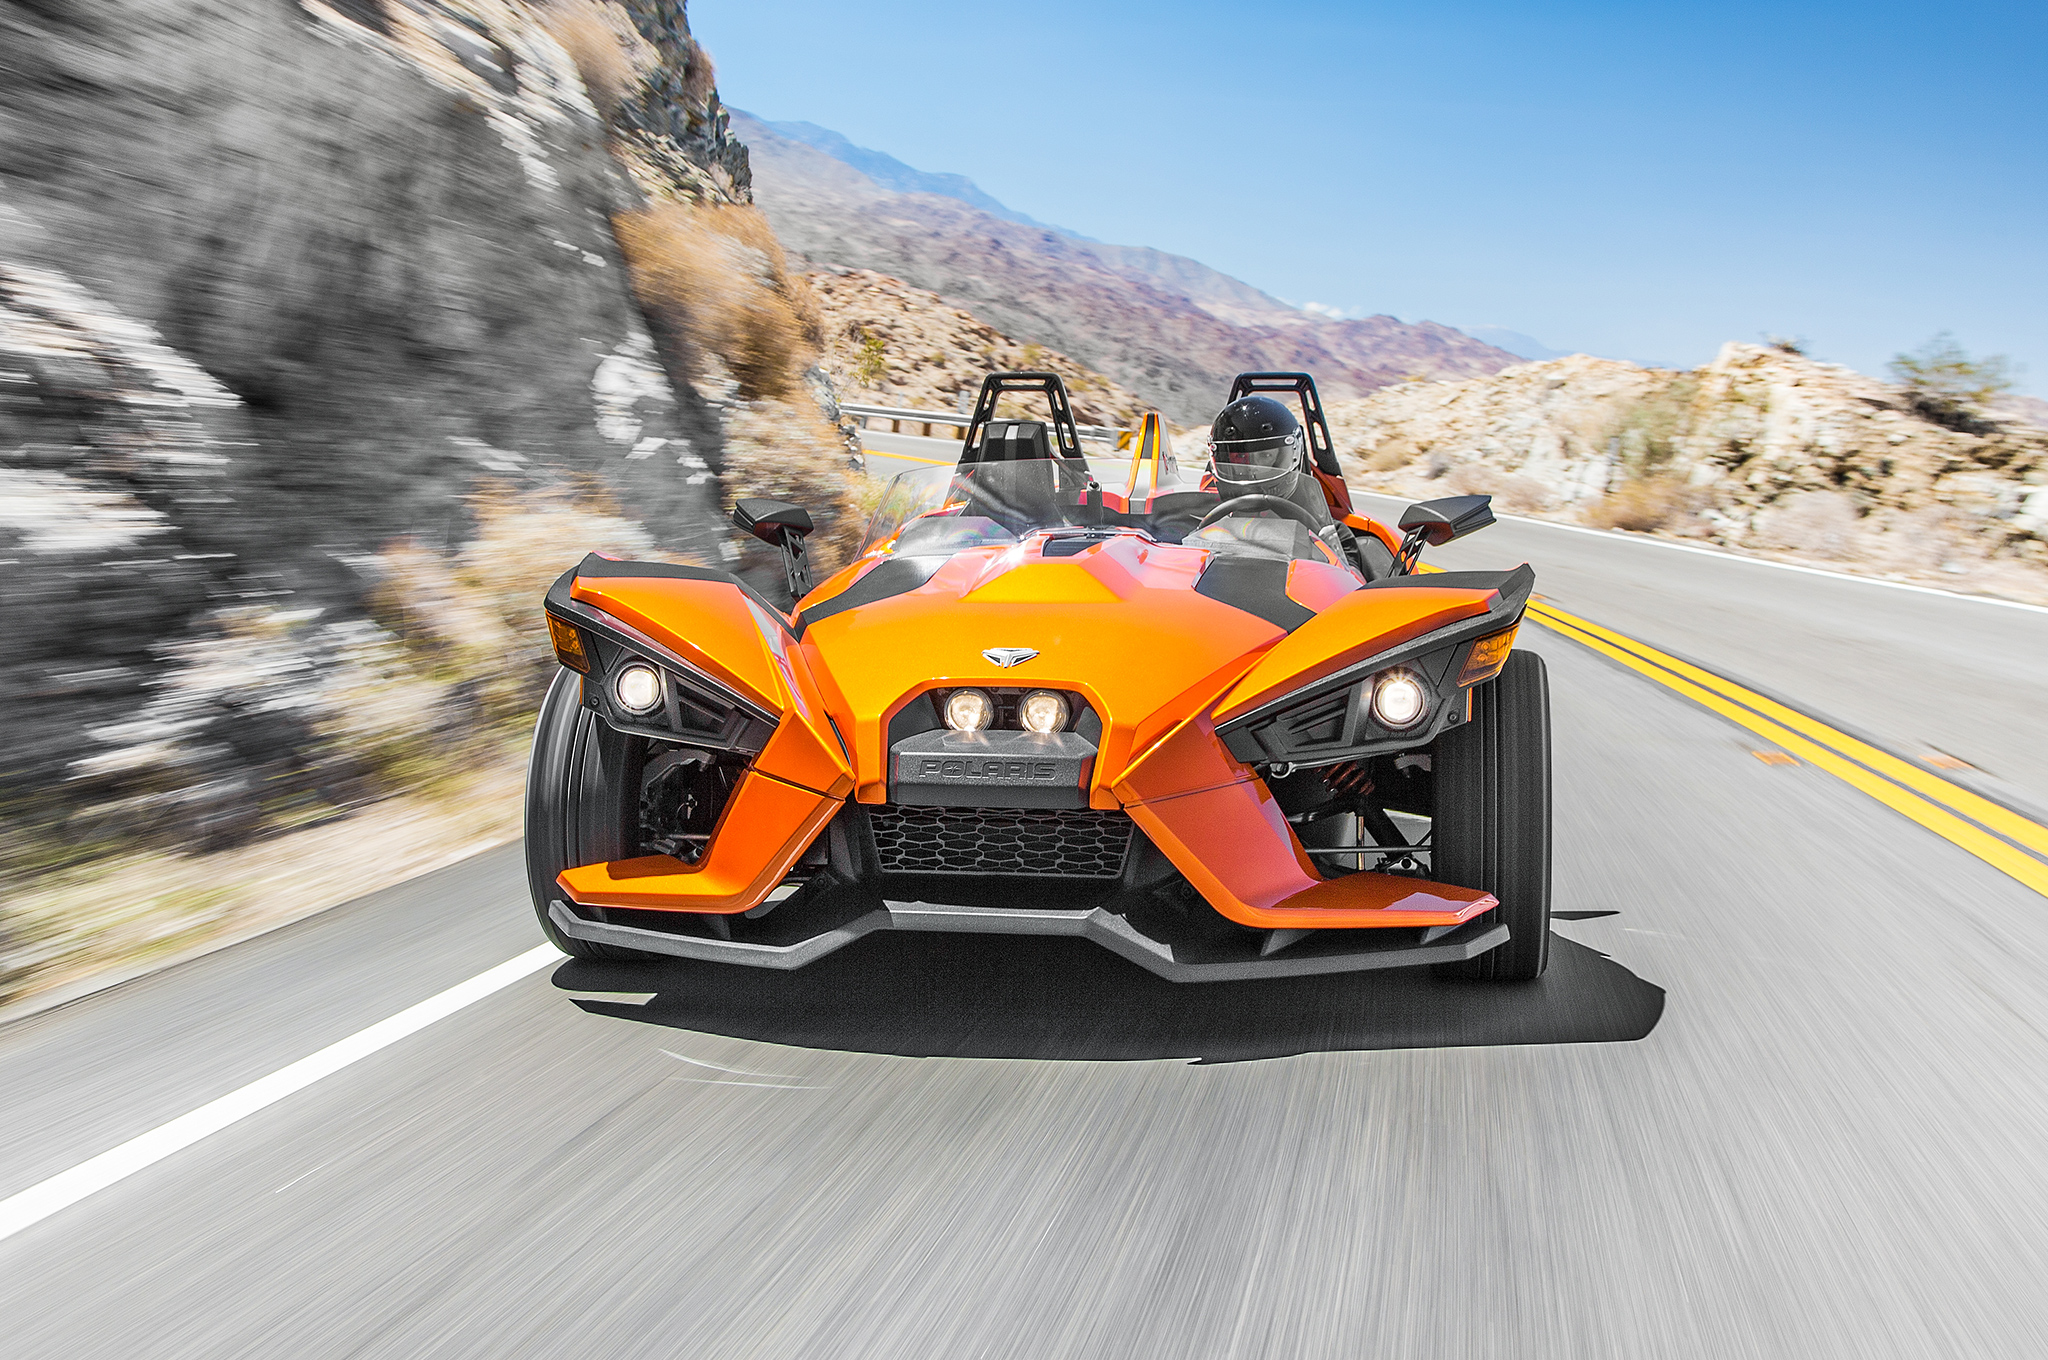 2015-Polaris-Slingshot-front-motion